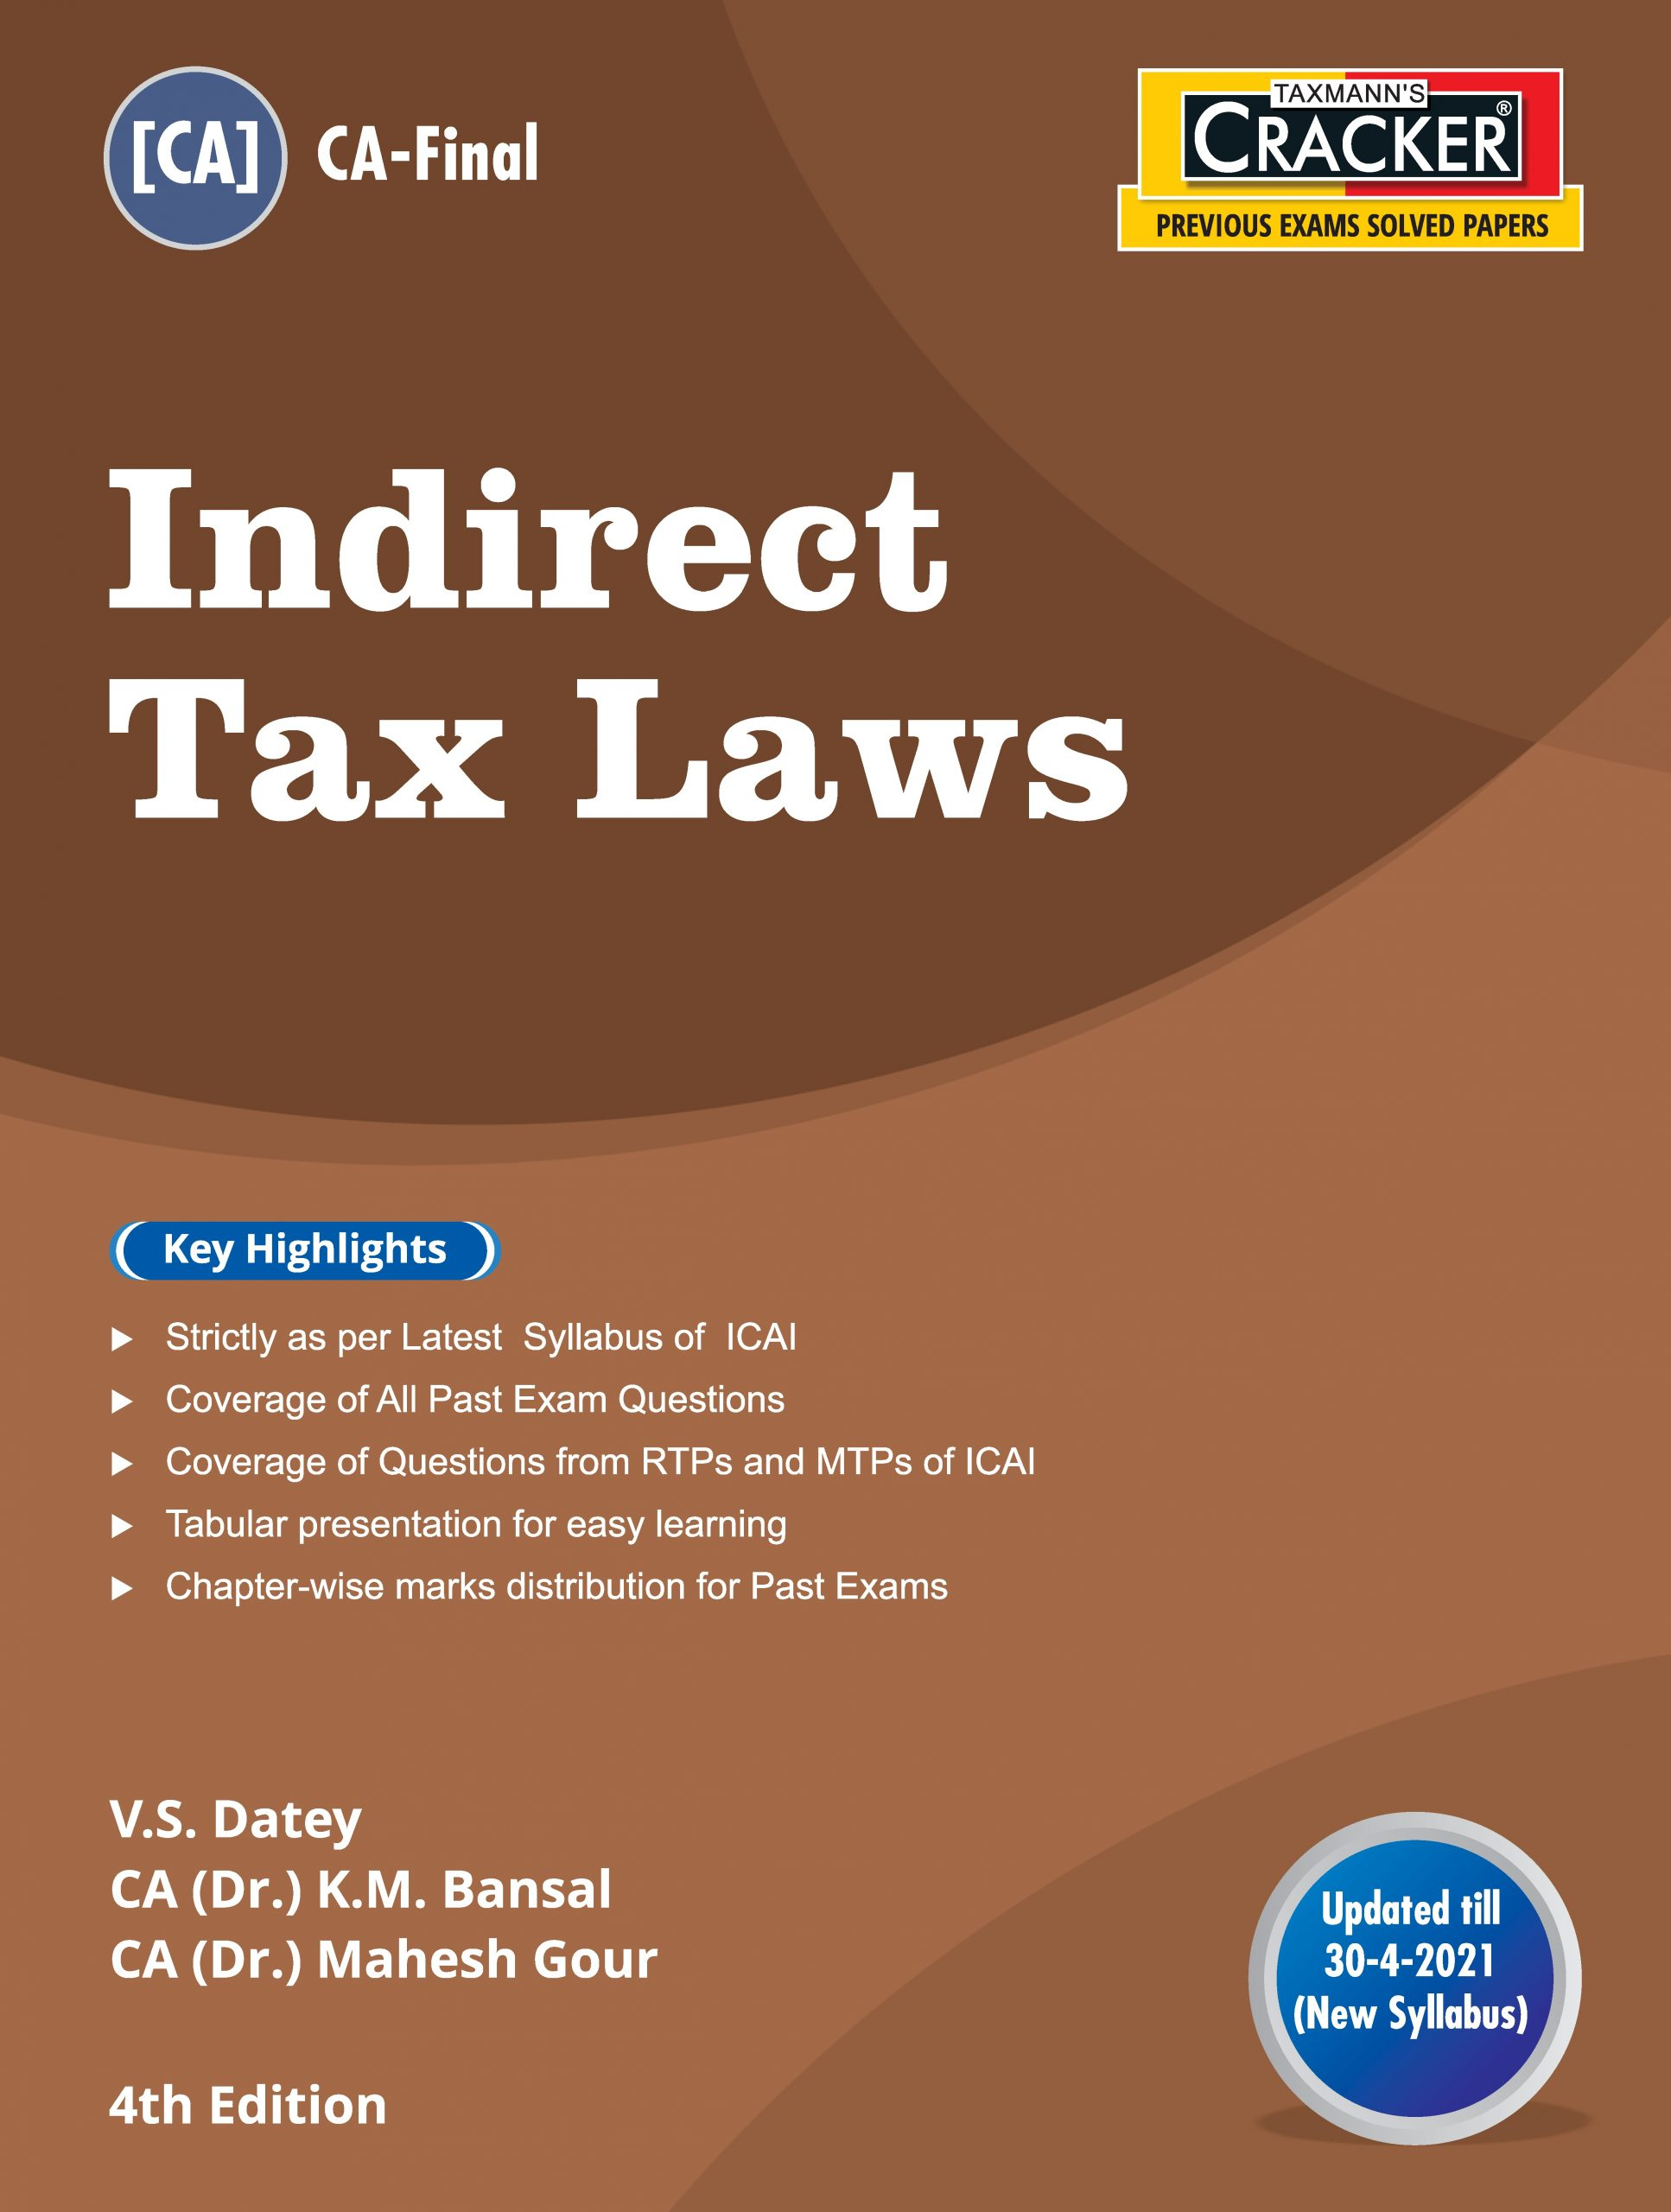 Taxmann Cracker CA final Indirect Tax Laws for 2021